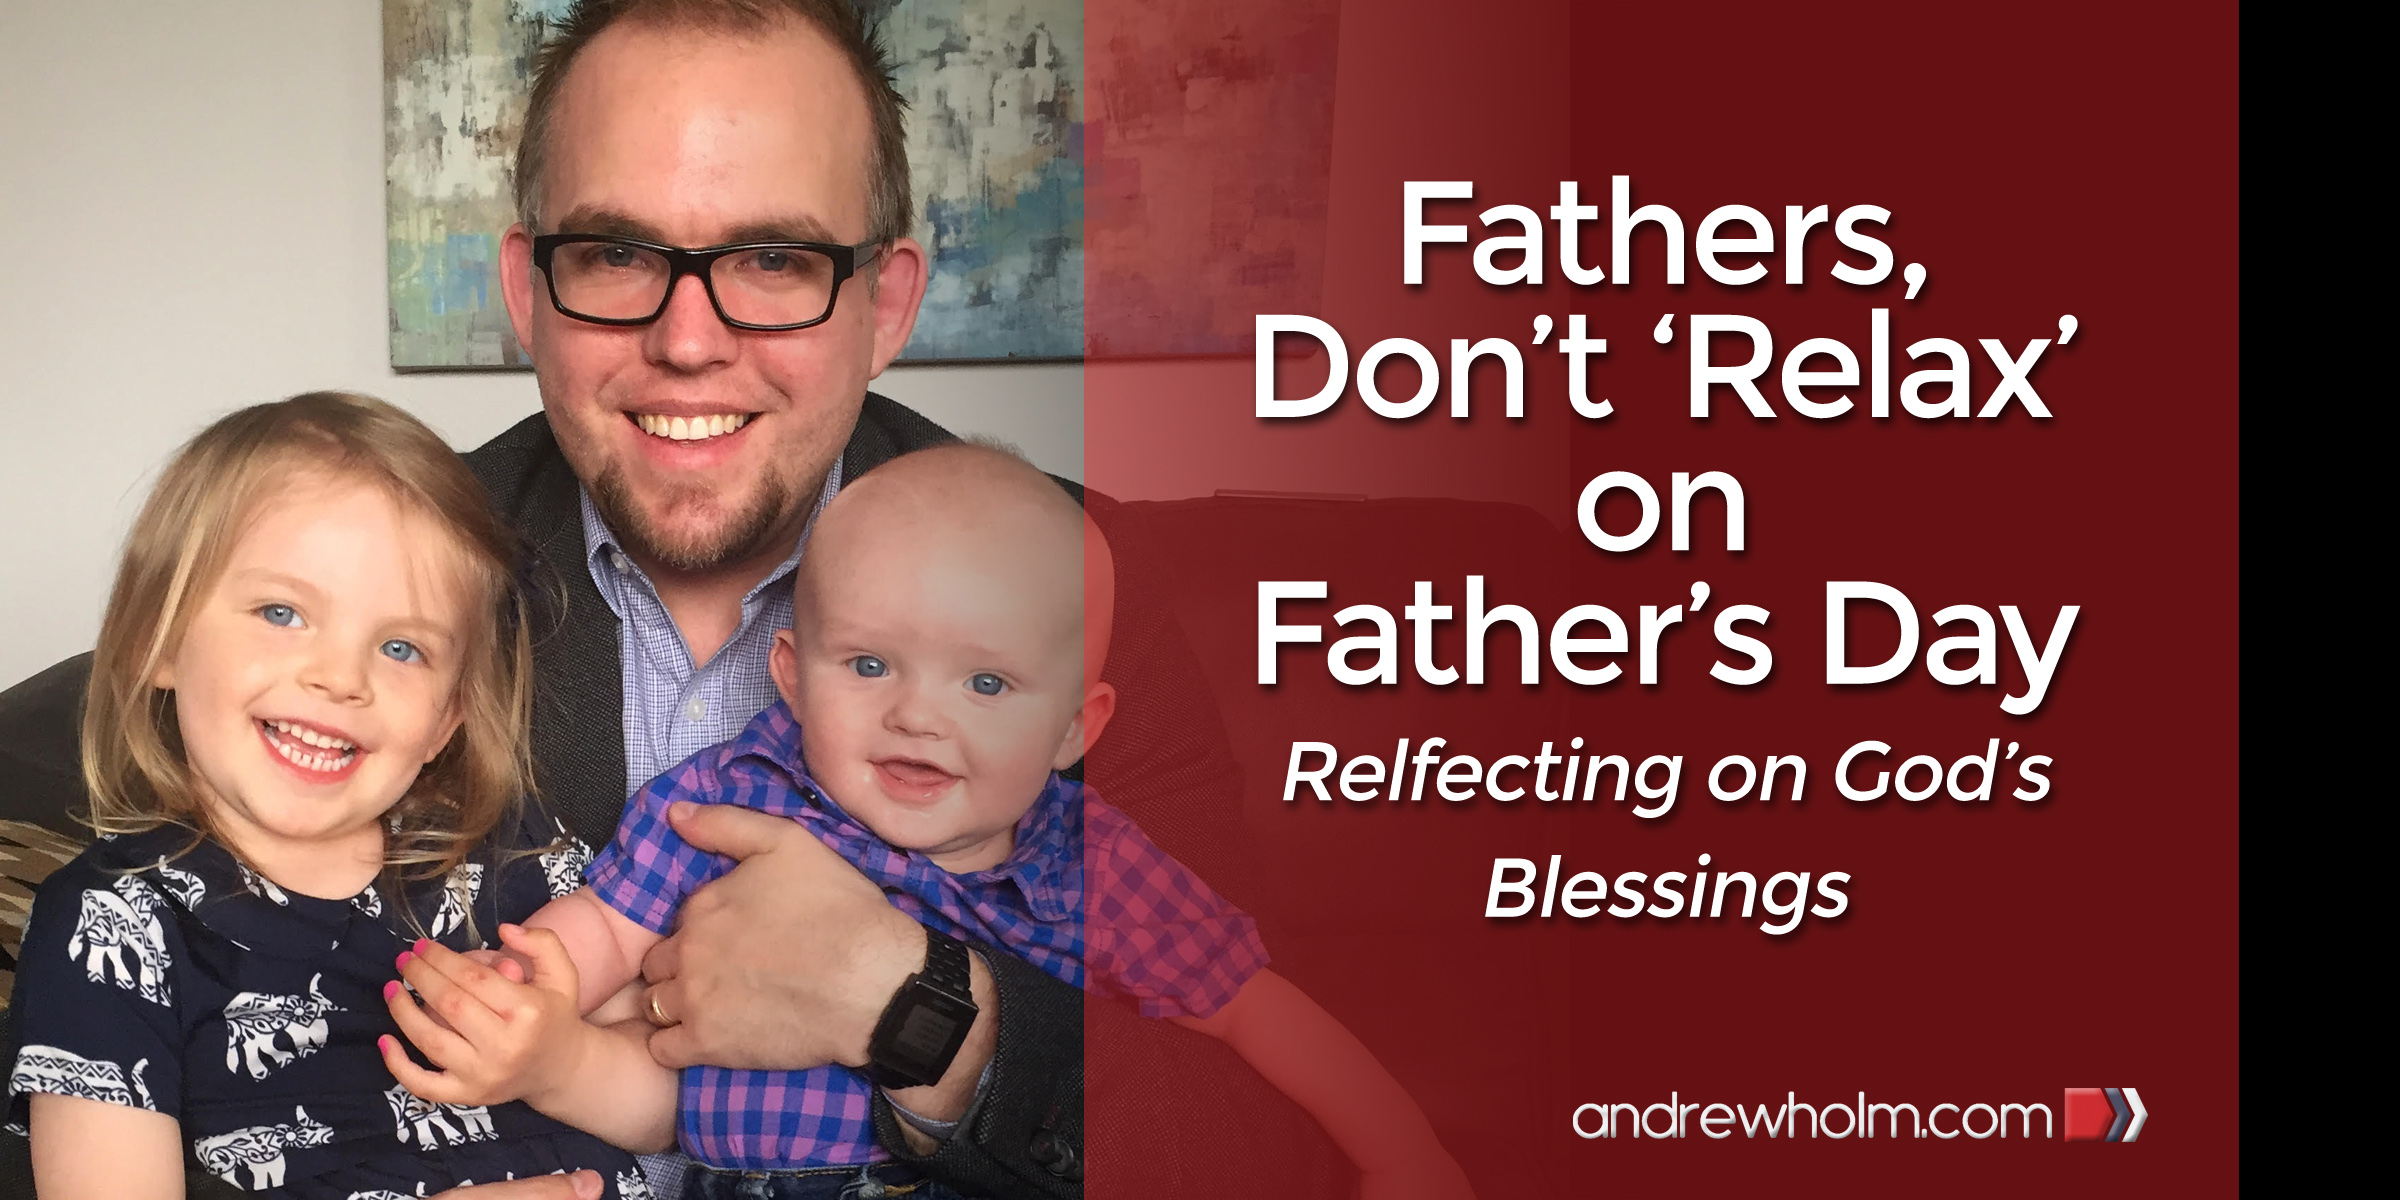 Fathers, Don't 'Relax' on Father's Day